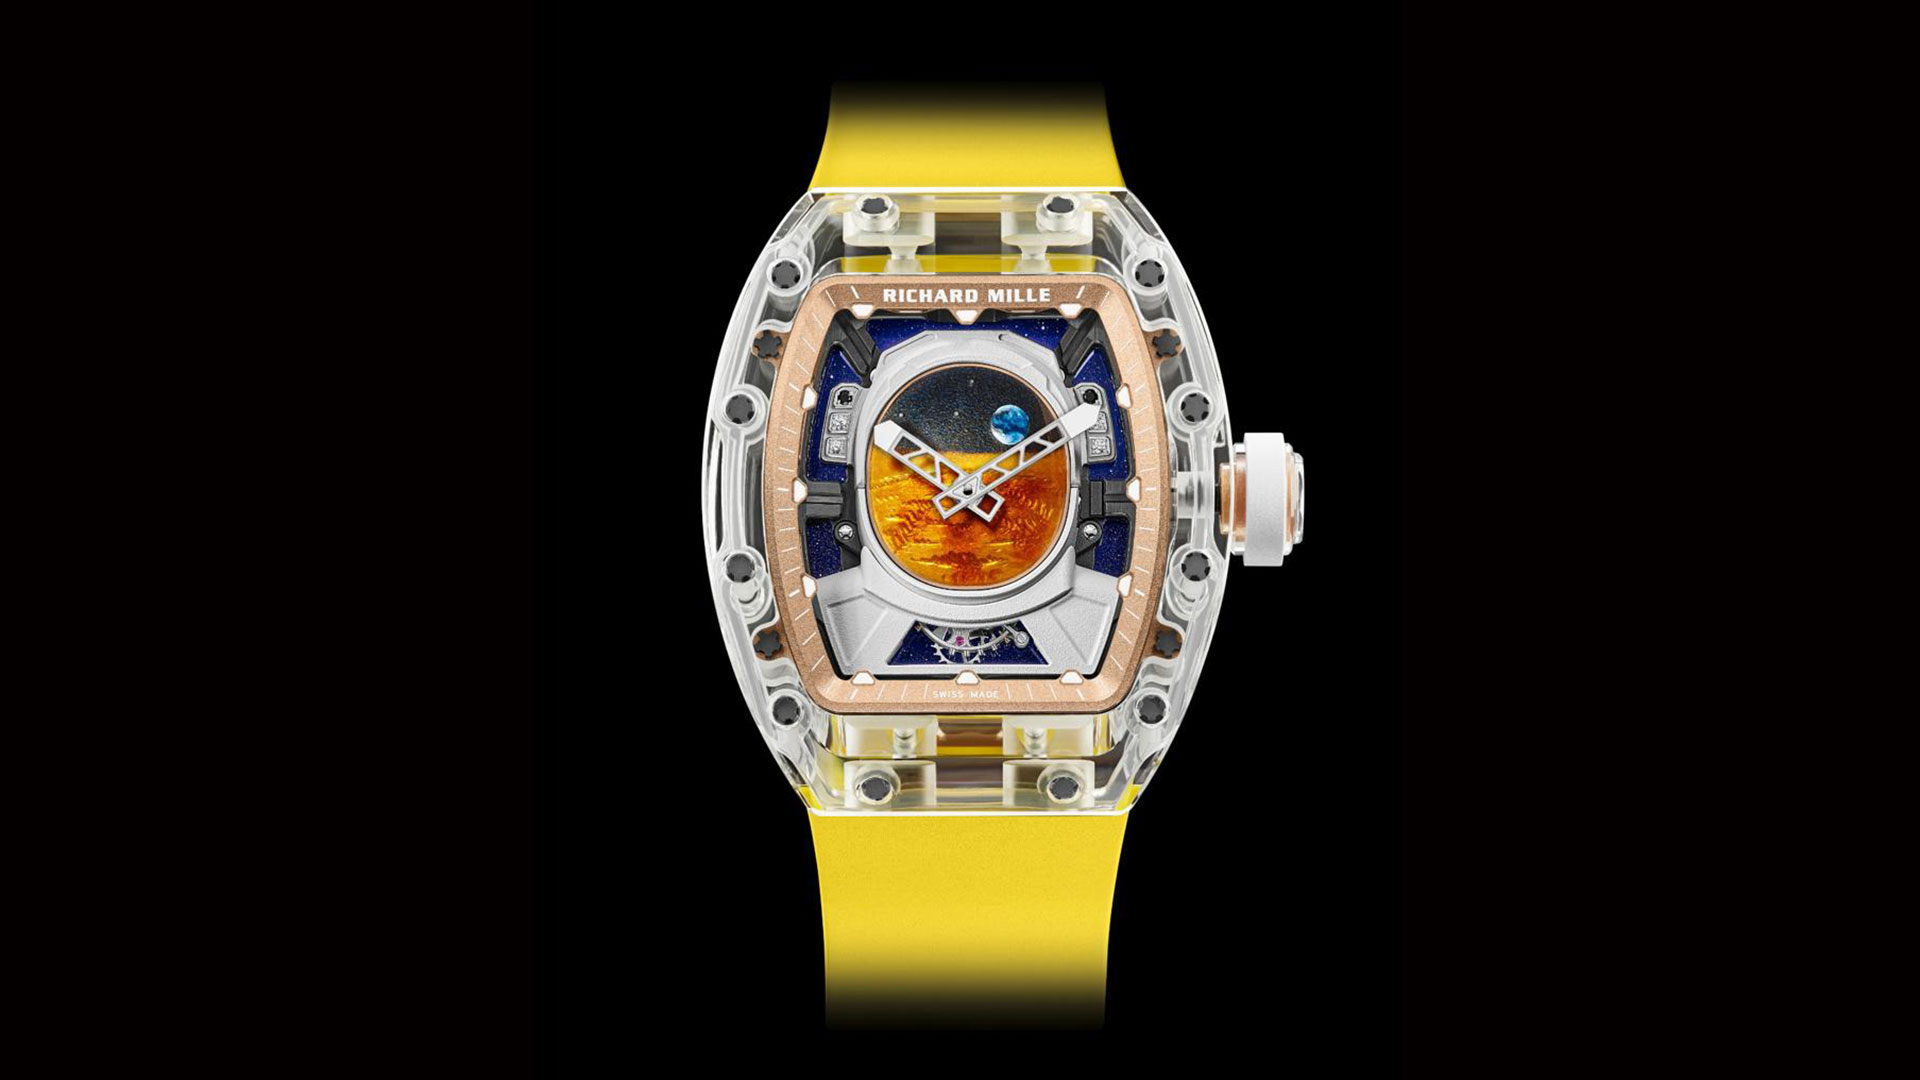 richard-mille-rm-52-05-tourbillon-pharrel-williams